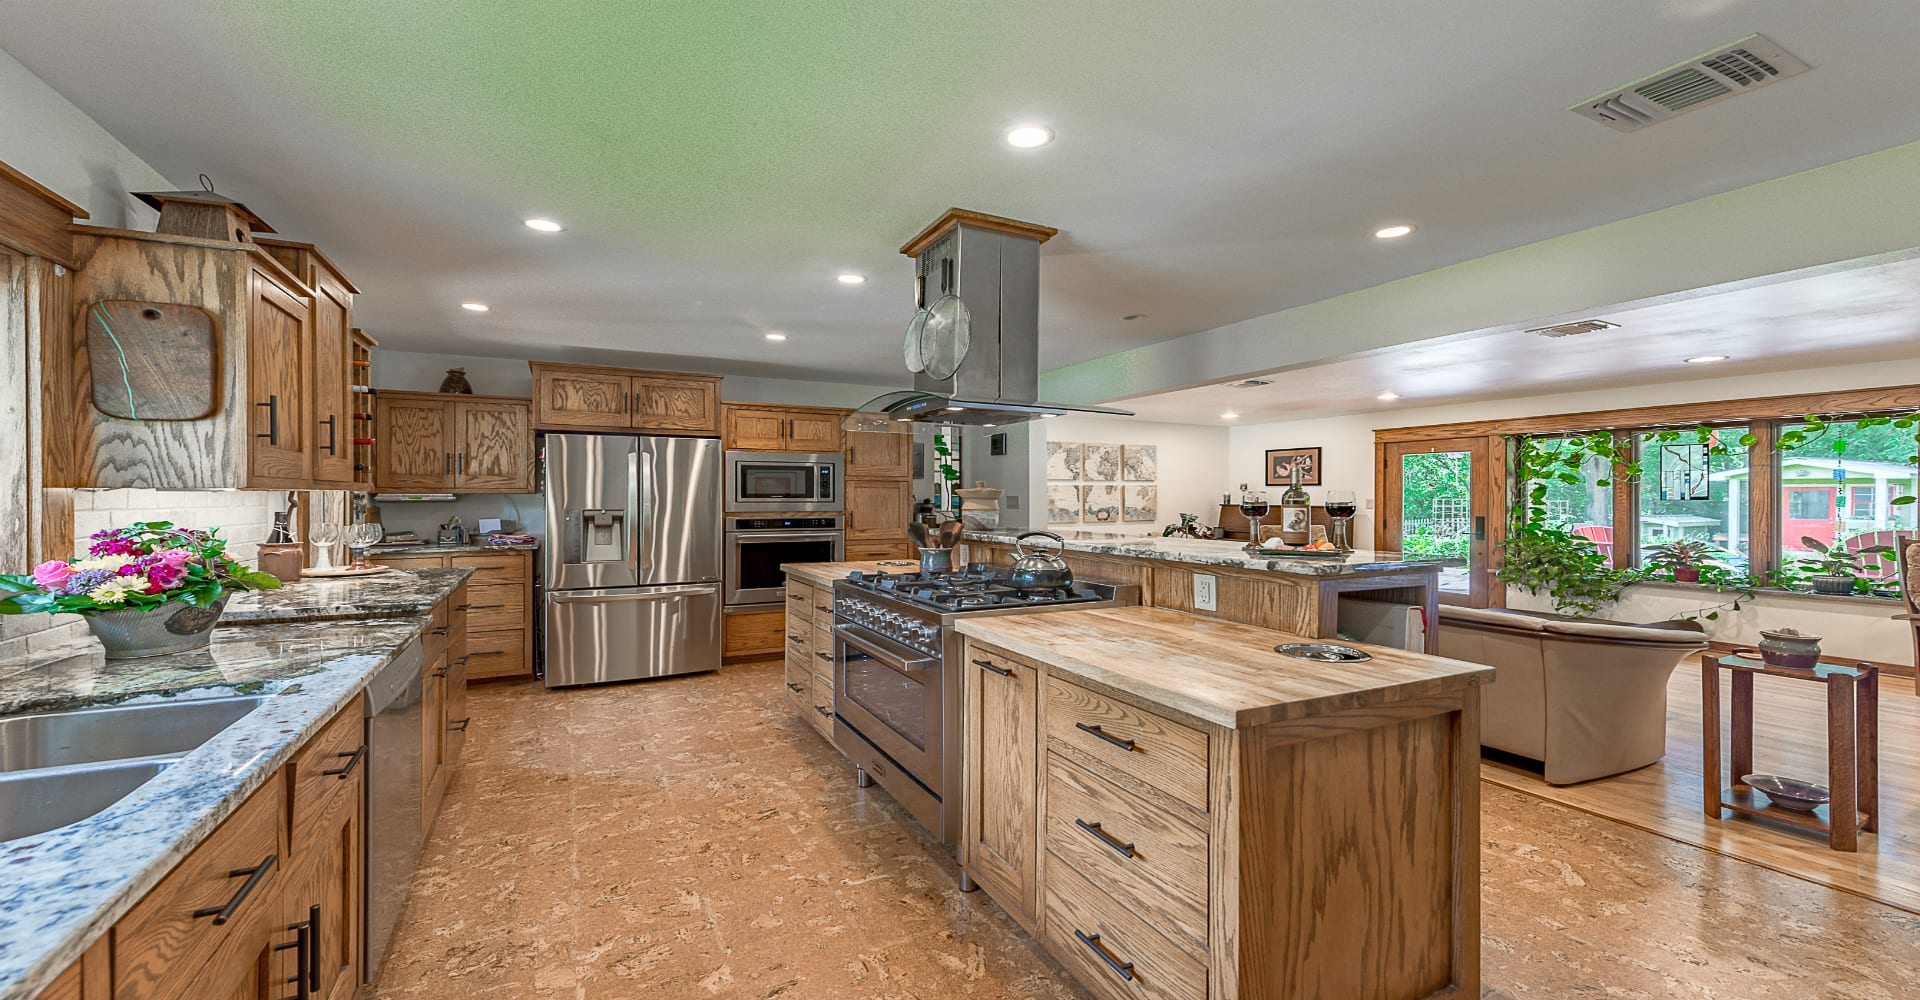 Kitchen Remodel Preparing Your Home